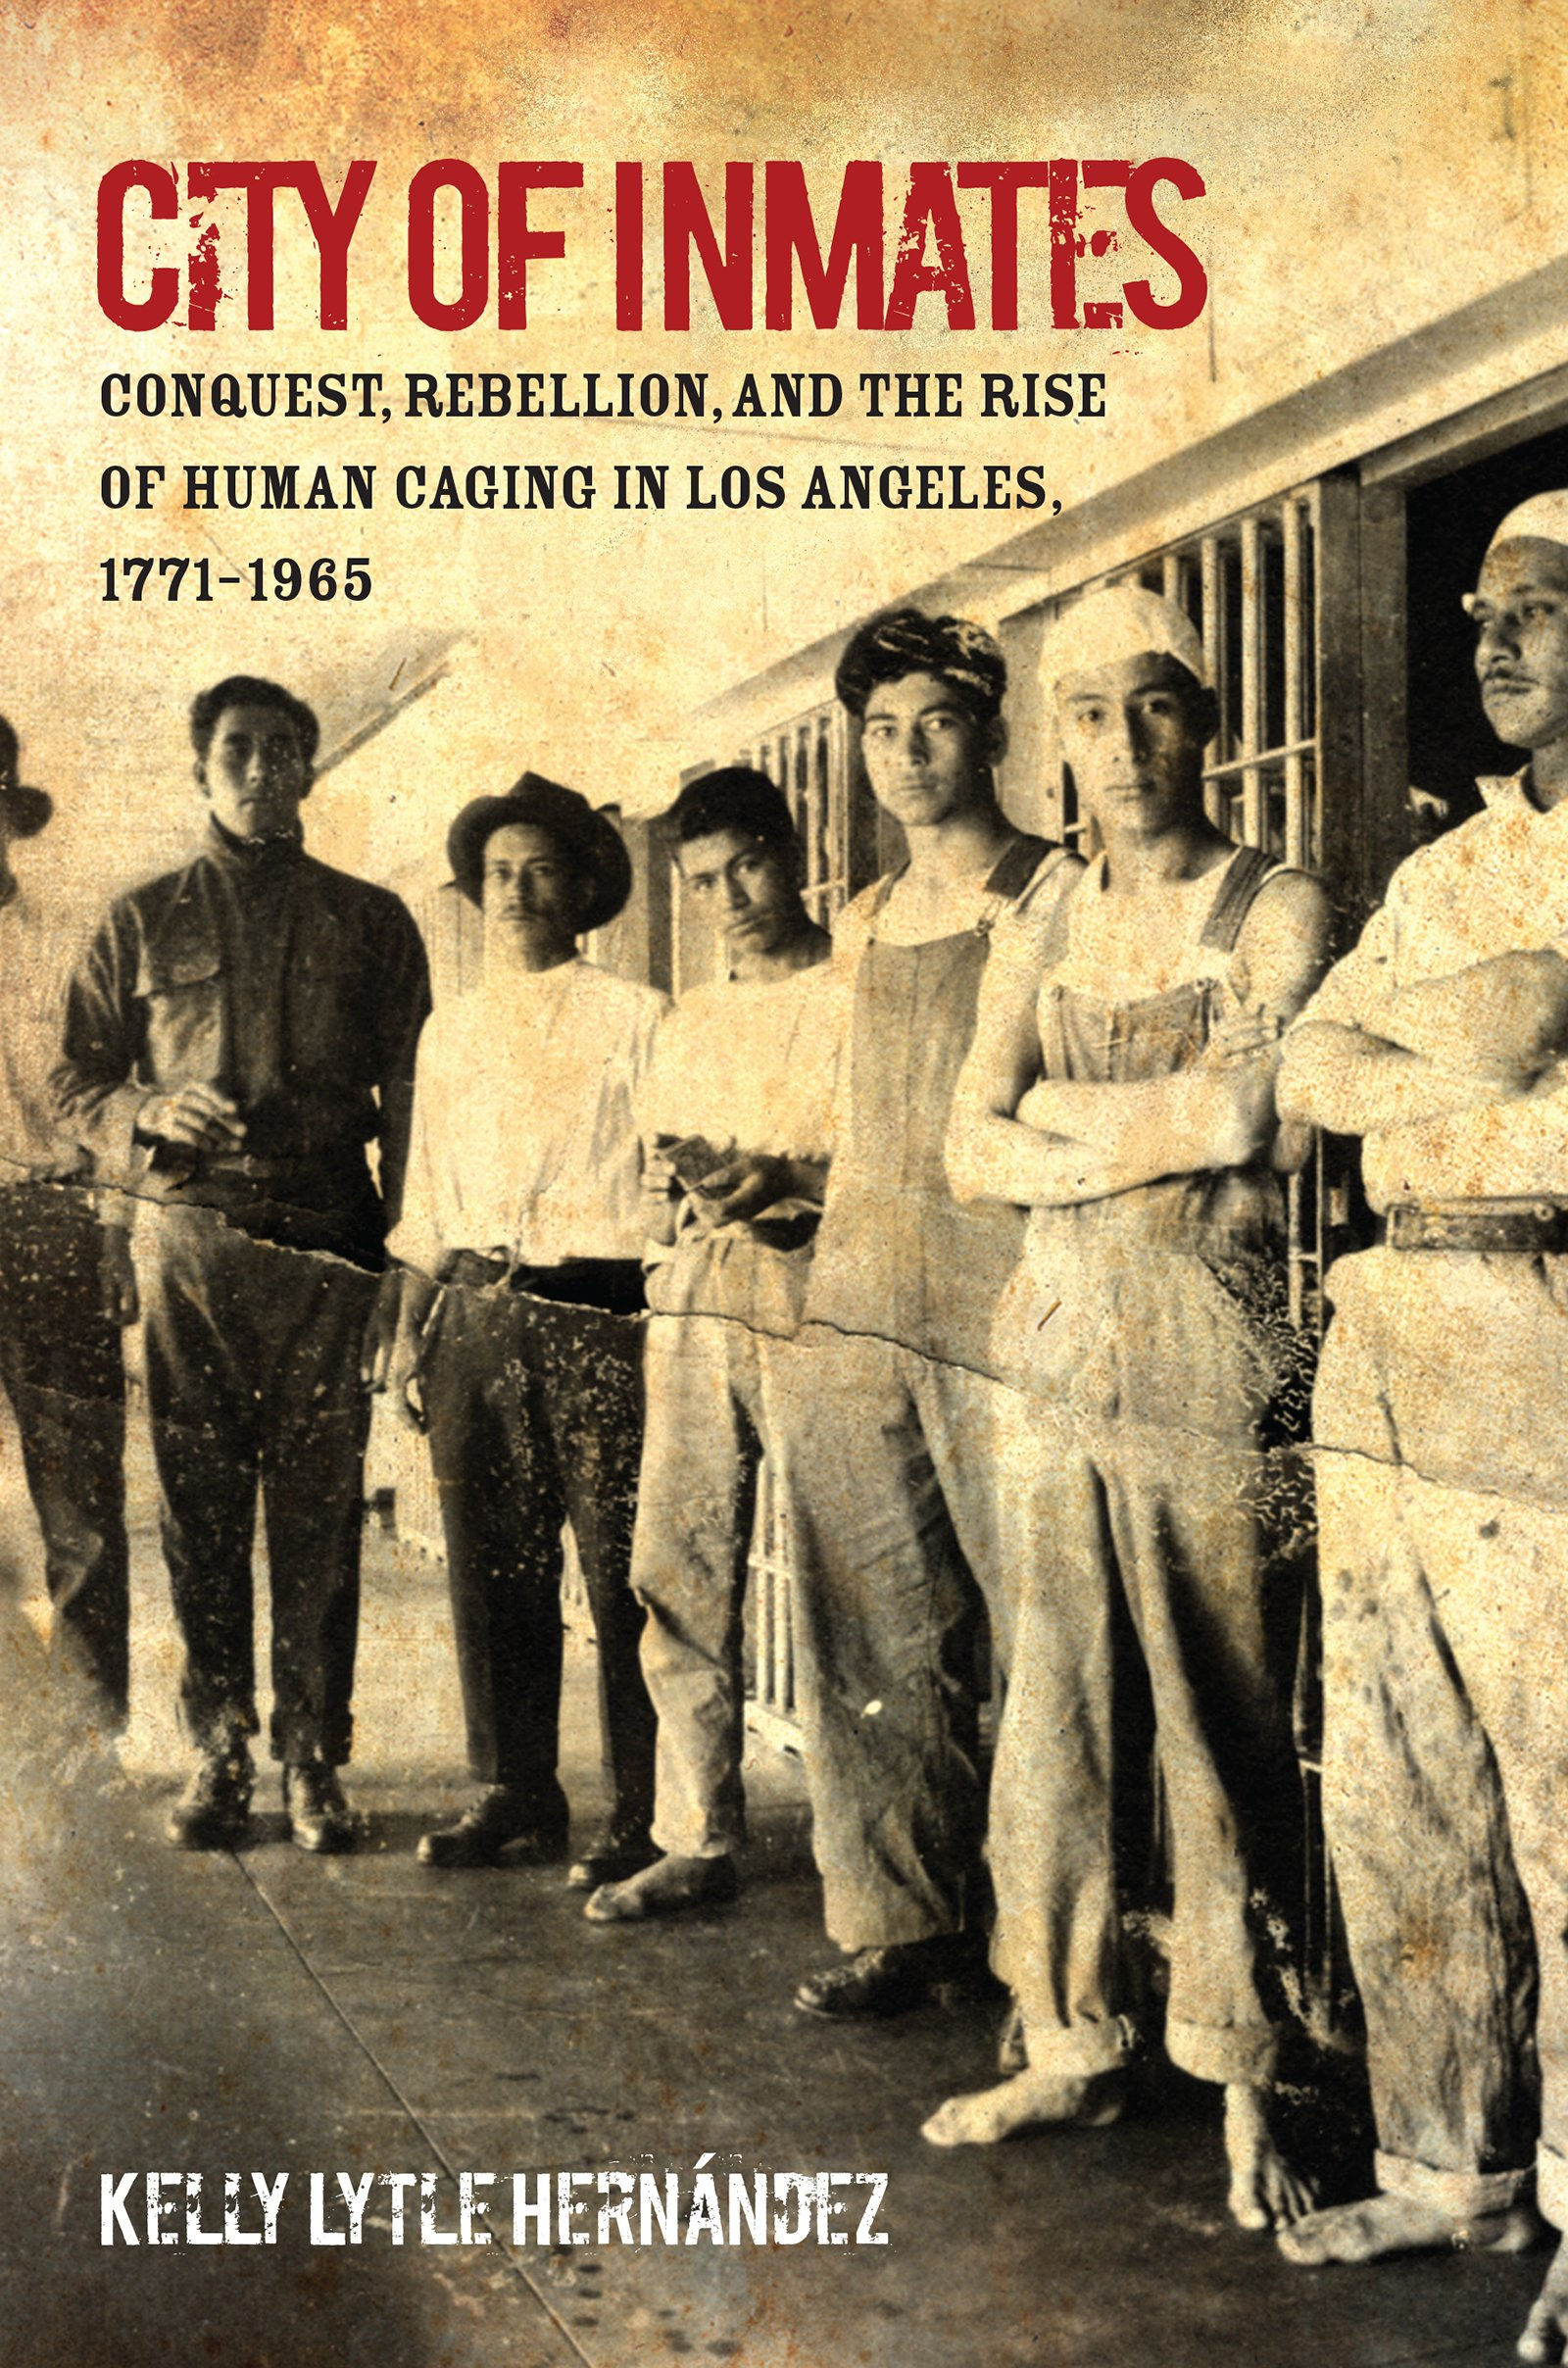 book cover: City of Inmates: Conquest, Rebellion, and the Rise of Human Caging in Los Angeles